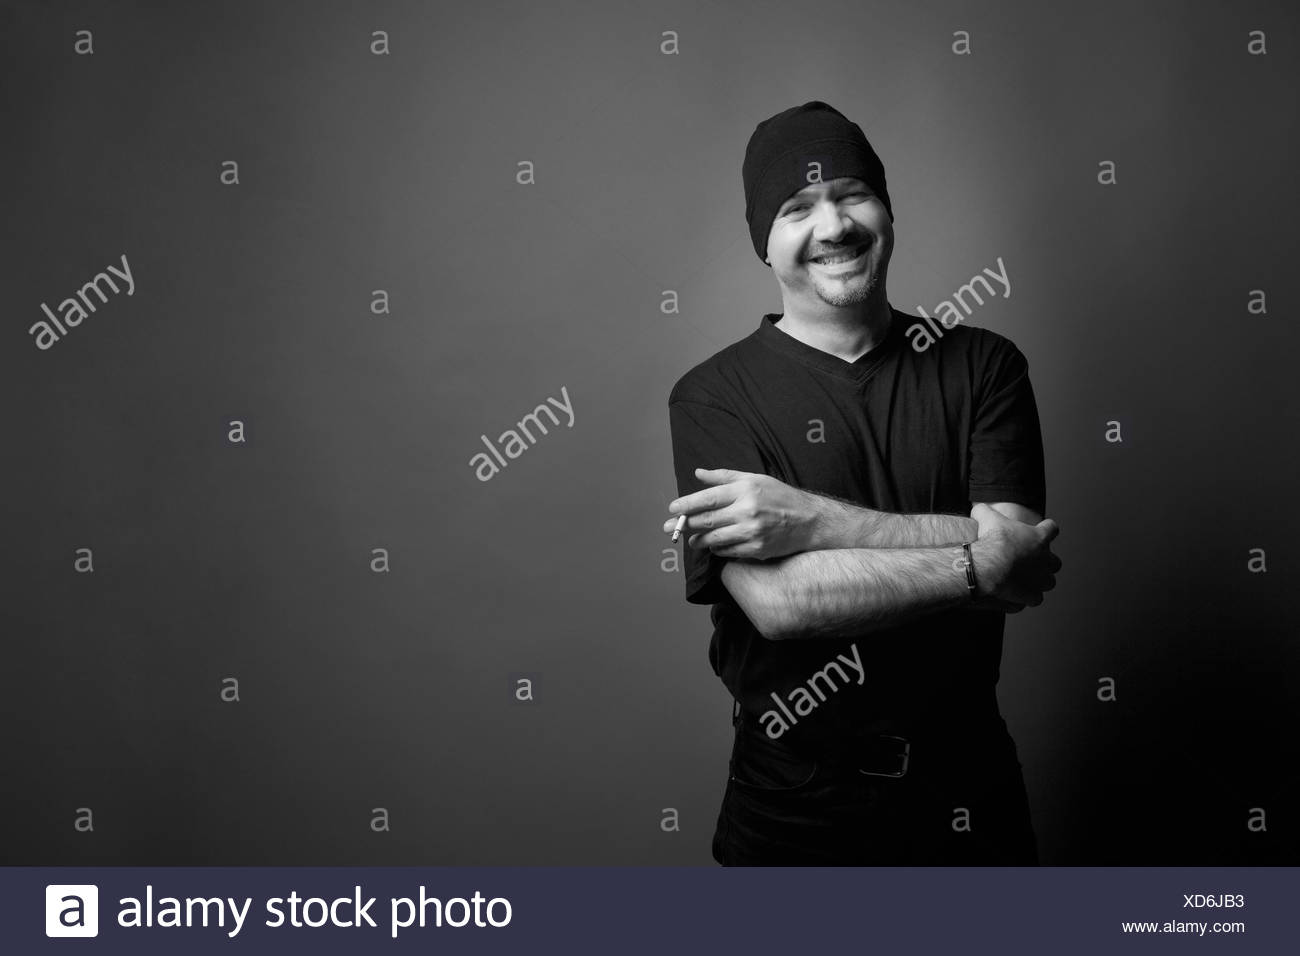 Black and white portrait man smoking cigarette - Stock Image